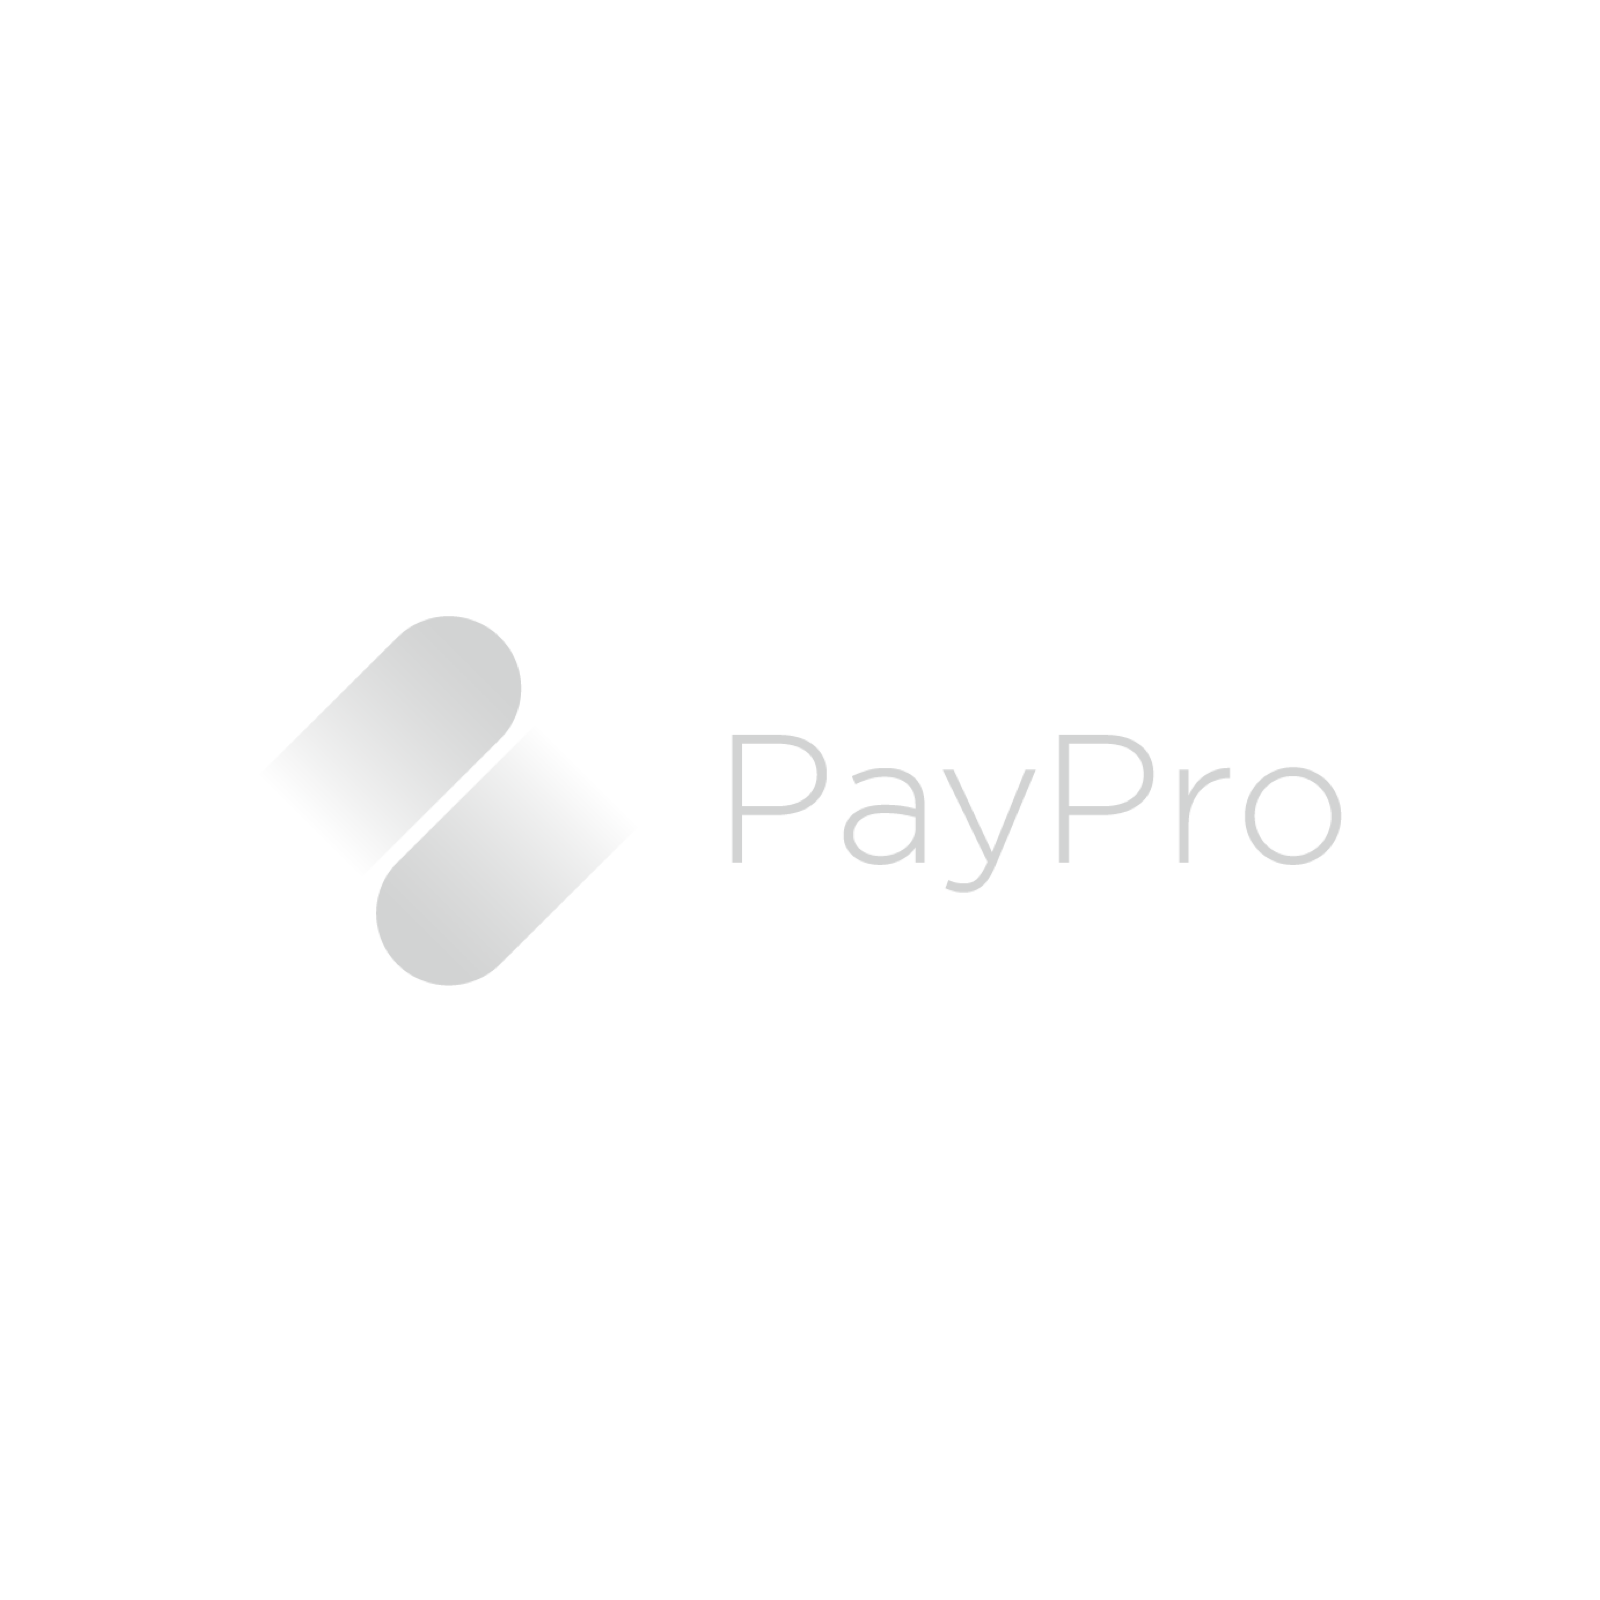 One Pager PayPro